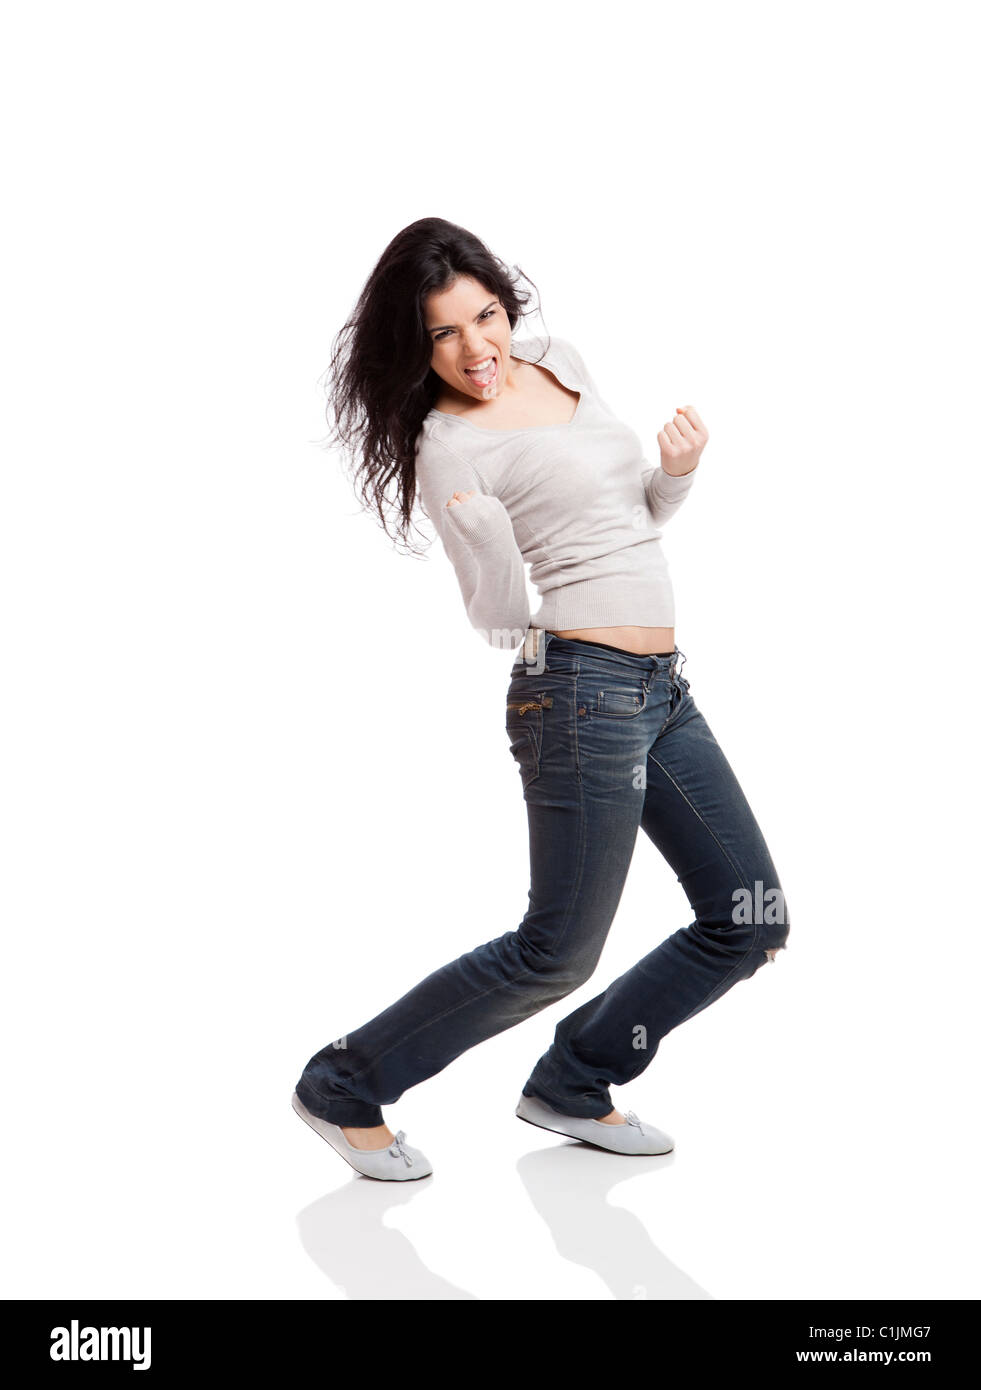 Happy young woman with arms up after wining something, isolated against a white background - Stock Image